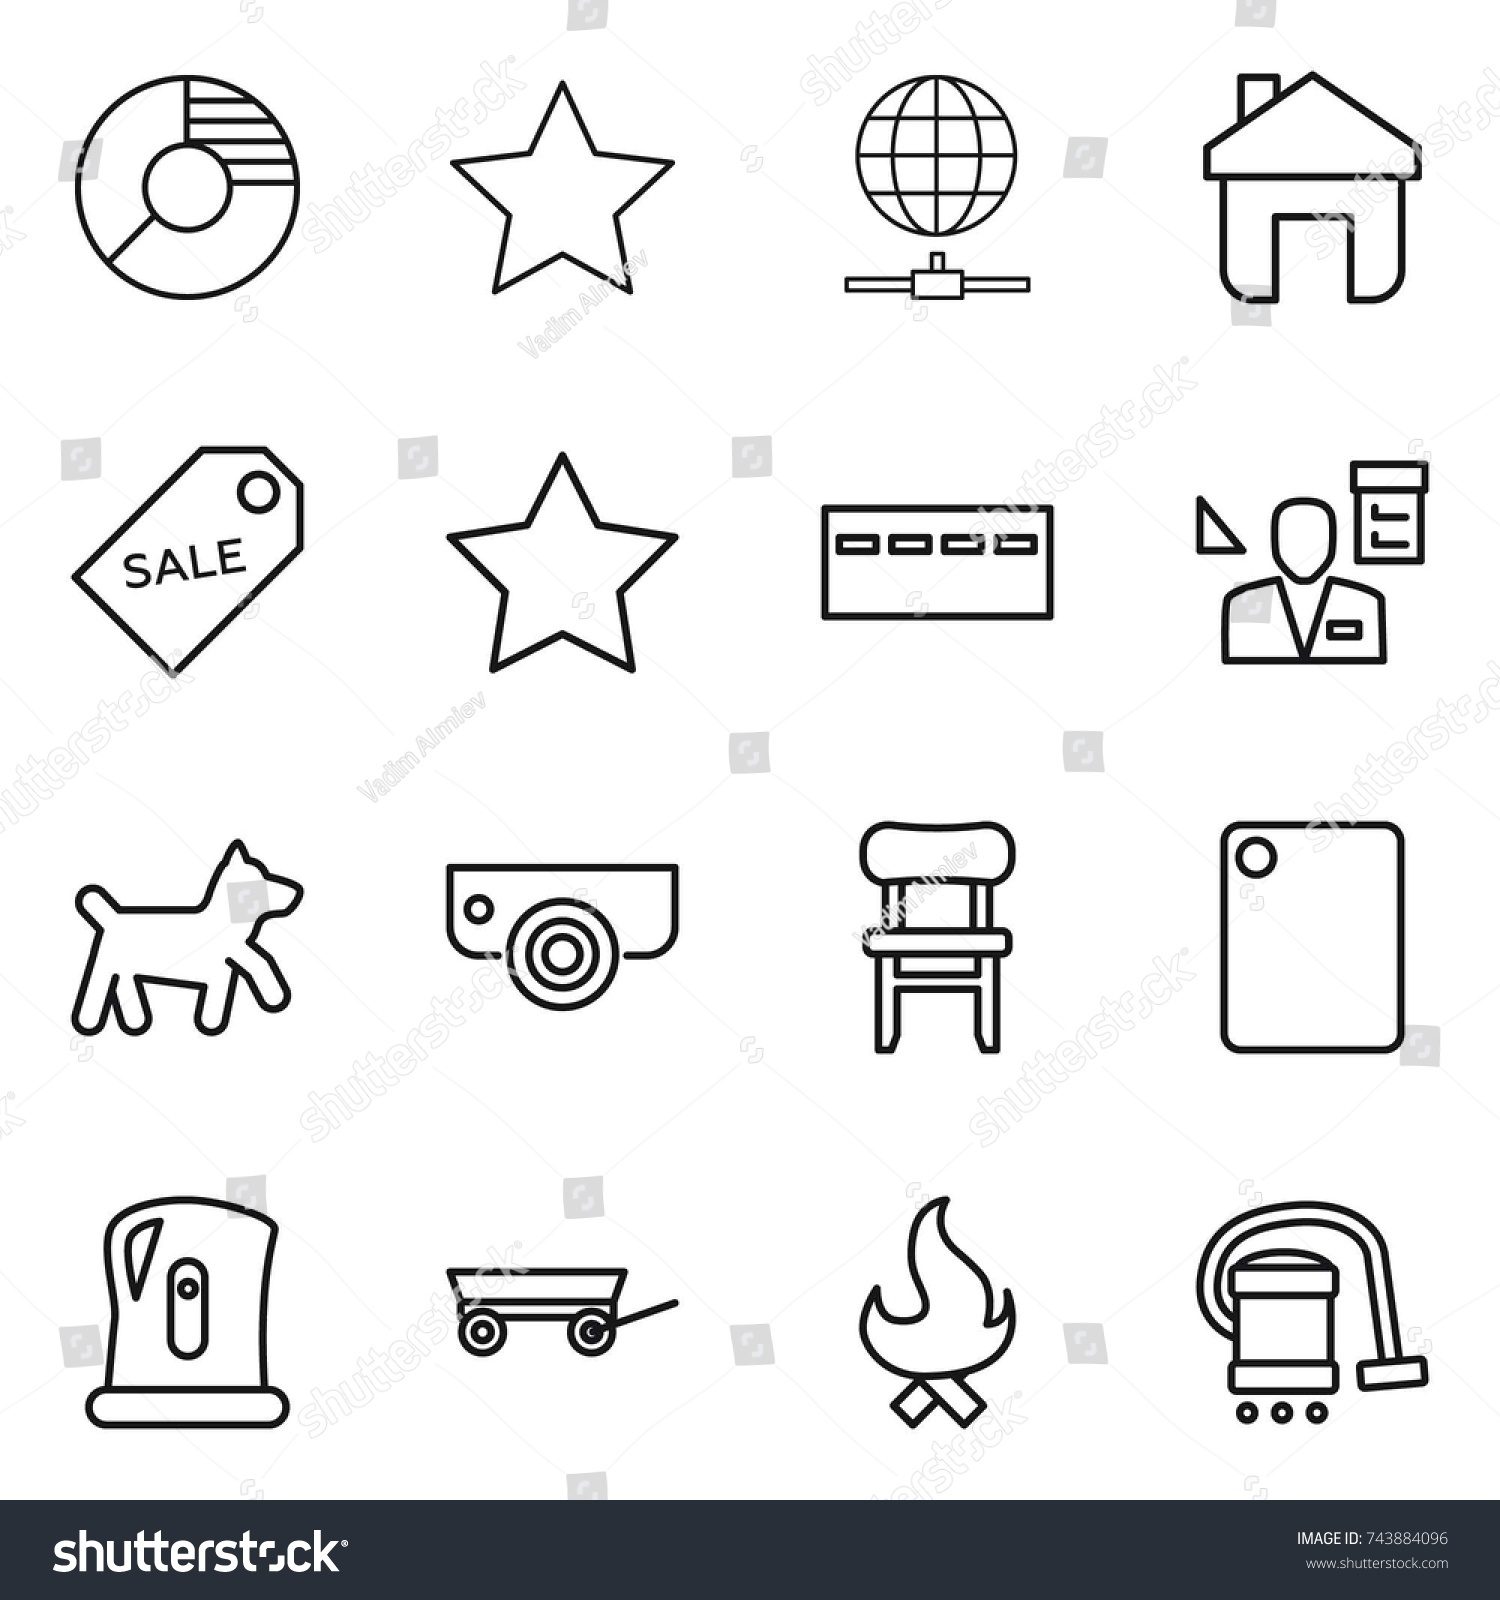 Thin line icon set circle diagram stock vector 743884096 shutterstock ccuart Gallery